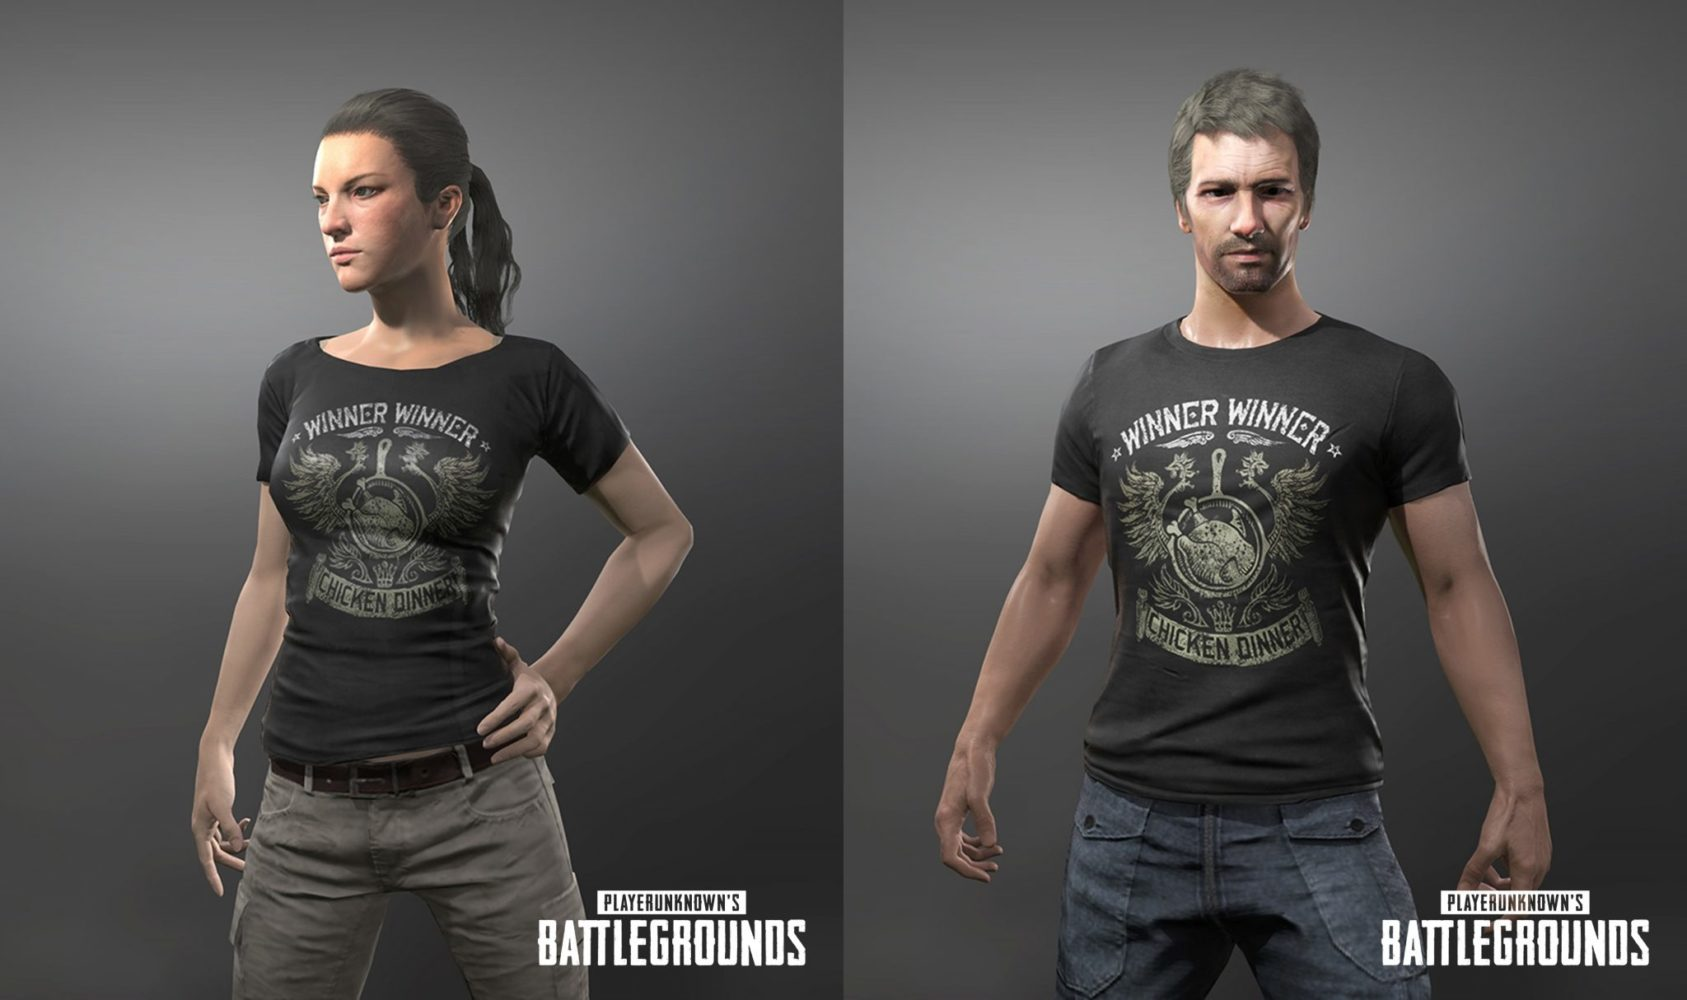 PUBG T-shirt chicken dinner